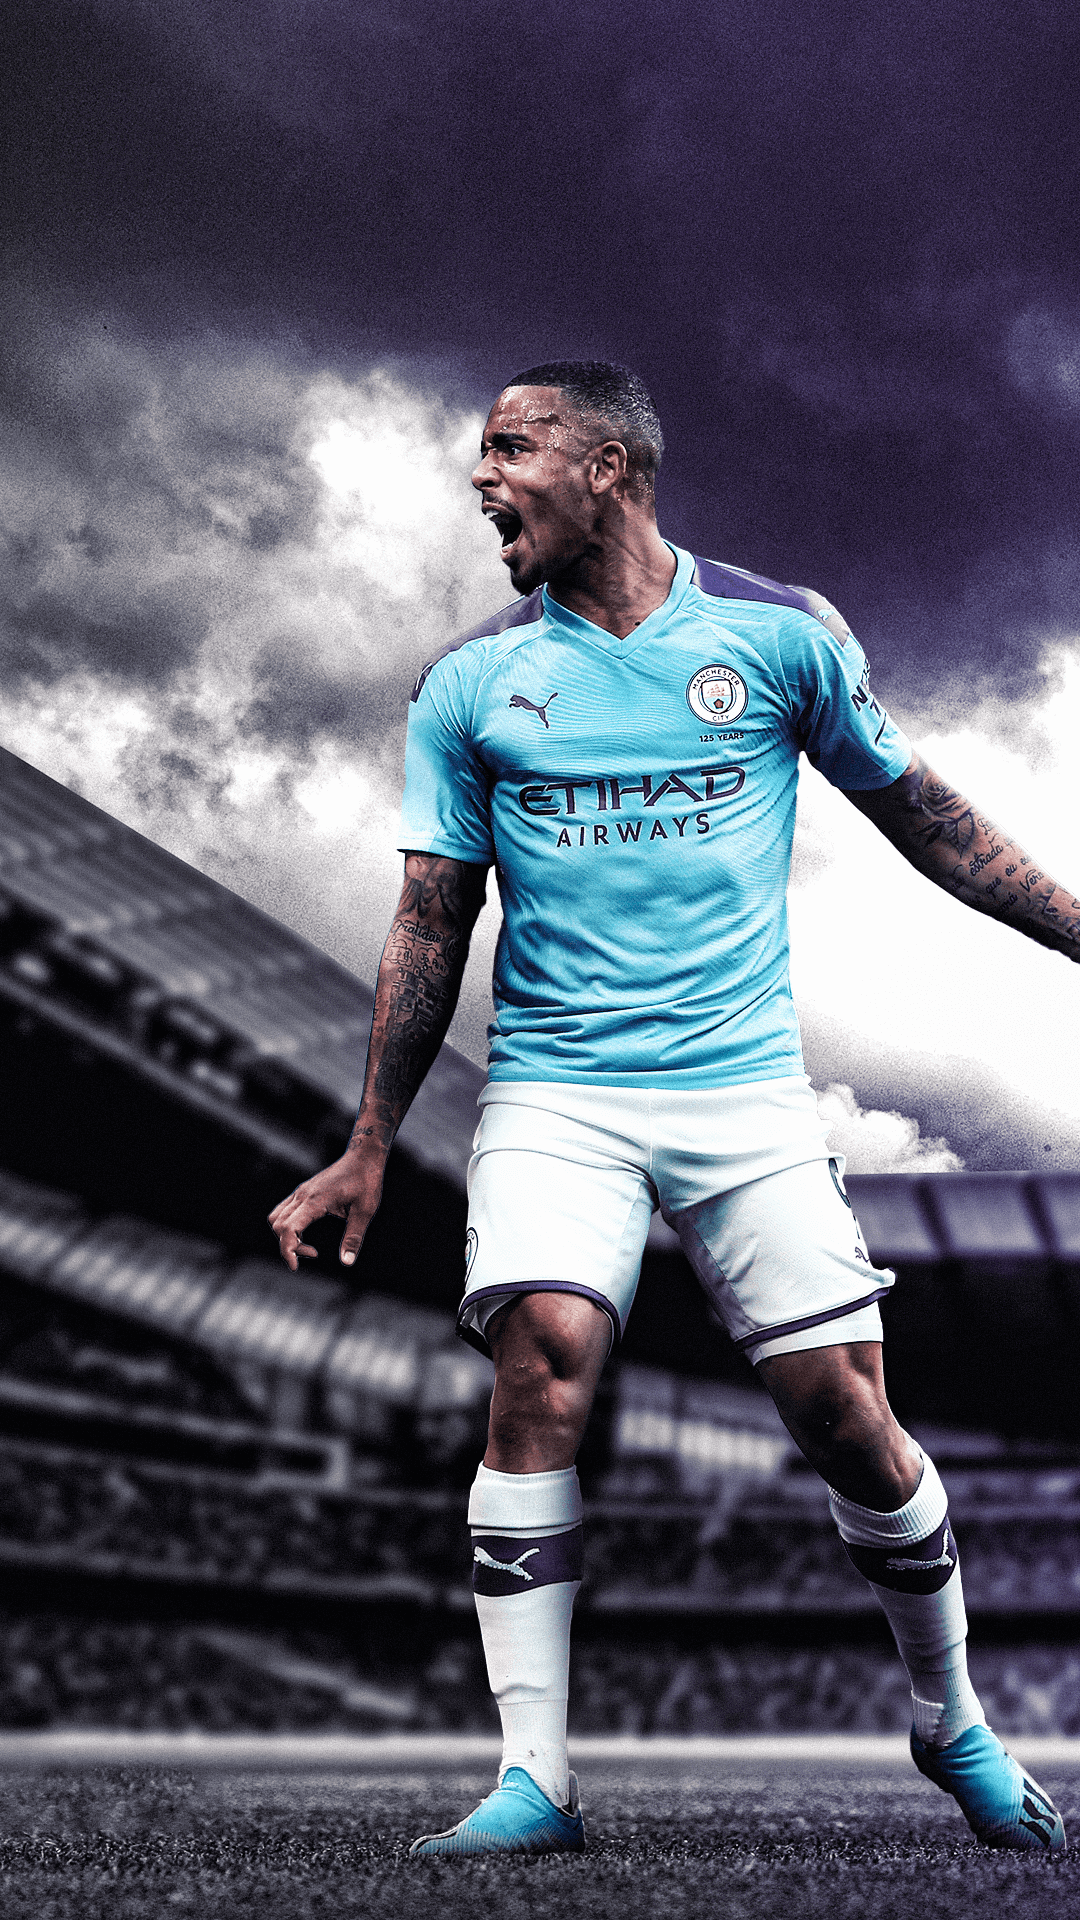 Manchester City wallpapers | FootyGraphic